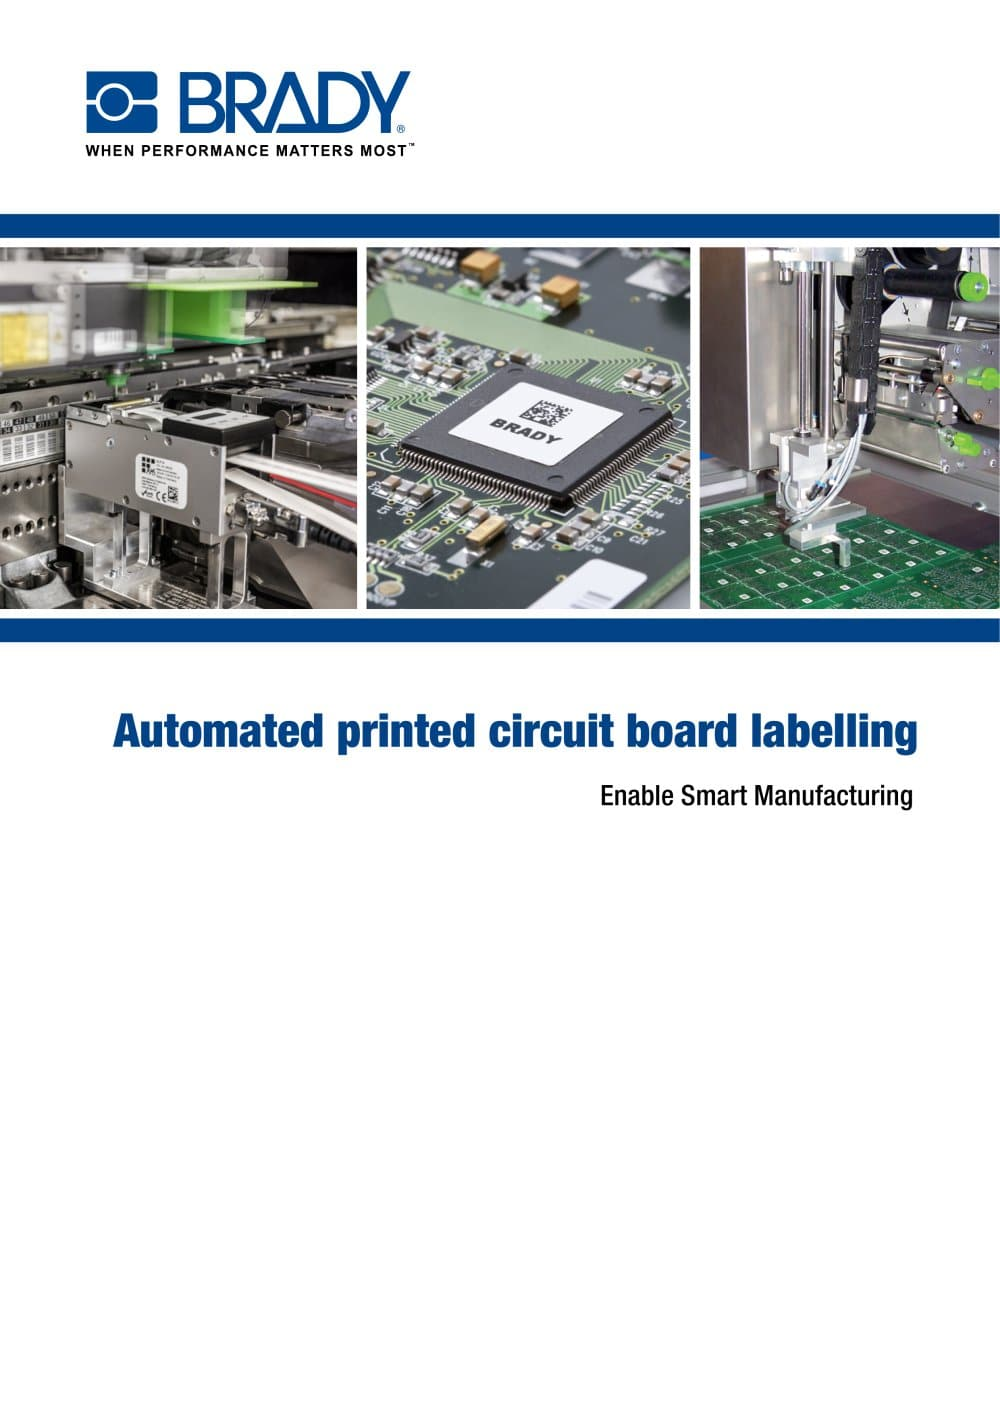 Automated Printed Circuit Board Labelling Brochure Brady Custom Assembly Services 1 12 Pages